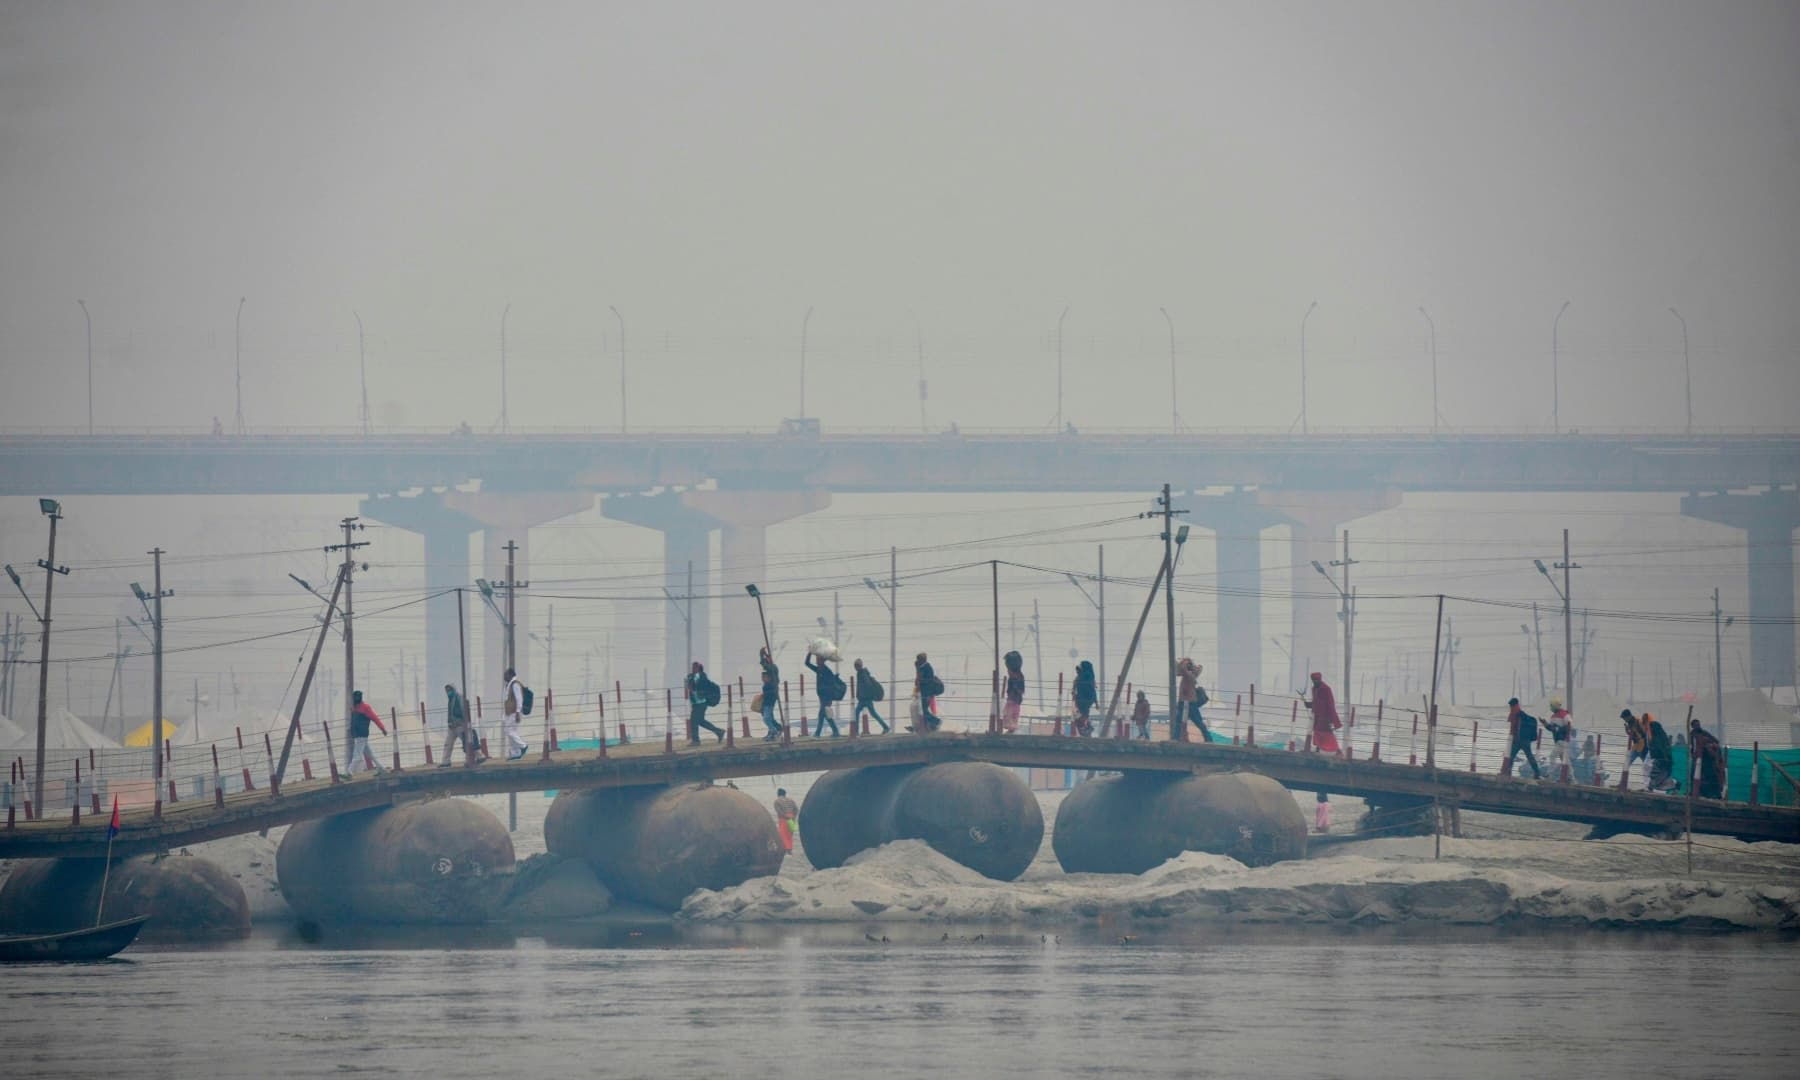 Hindu devotees walk across a newly constructed temporary pontoon bridge on the banks of Sangam, the confluence of rivers Ganges, Yamuna and the mythical Saraswati, on the occasion of Makar Sankranti, in Allahabad on January 14. — AFP